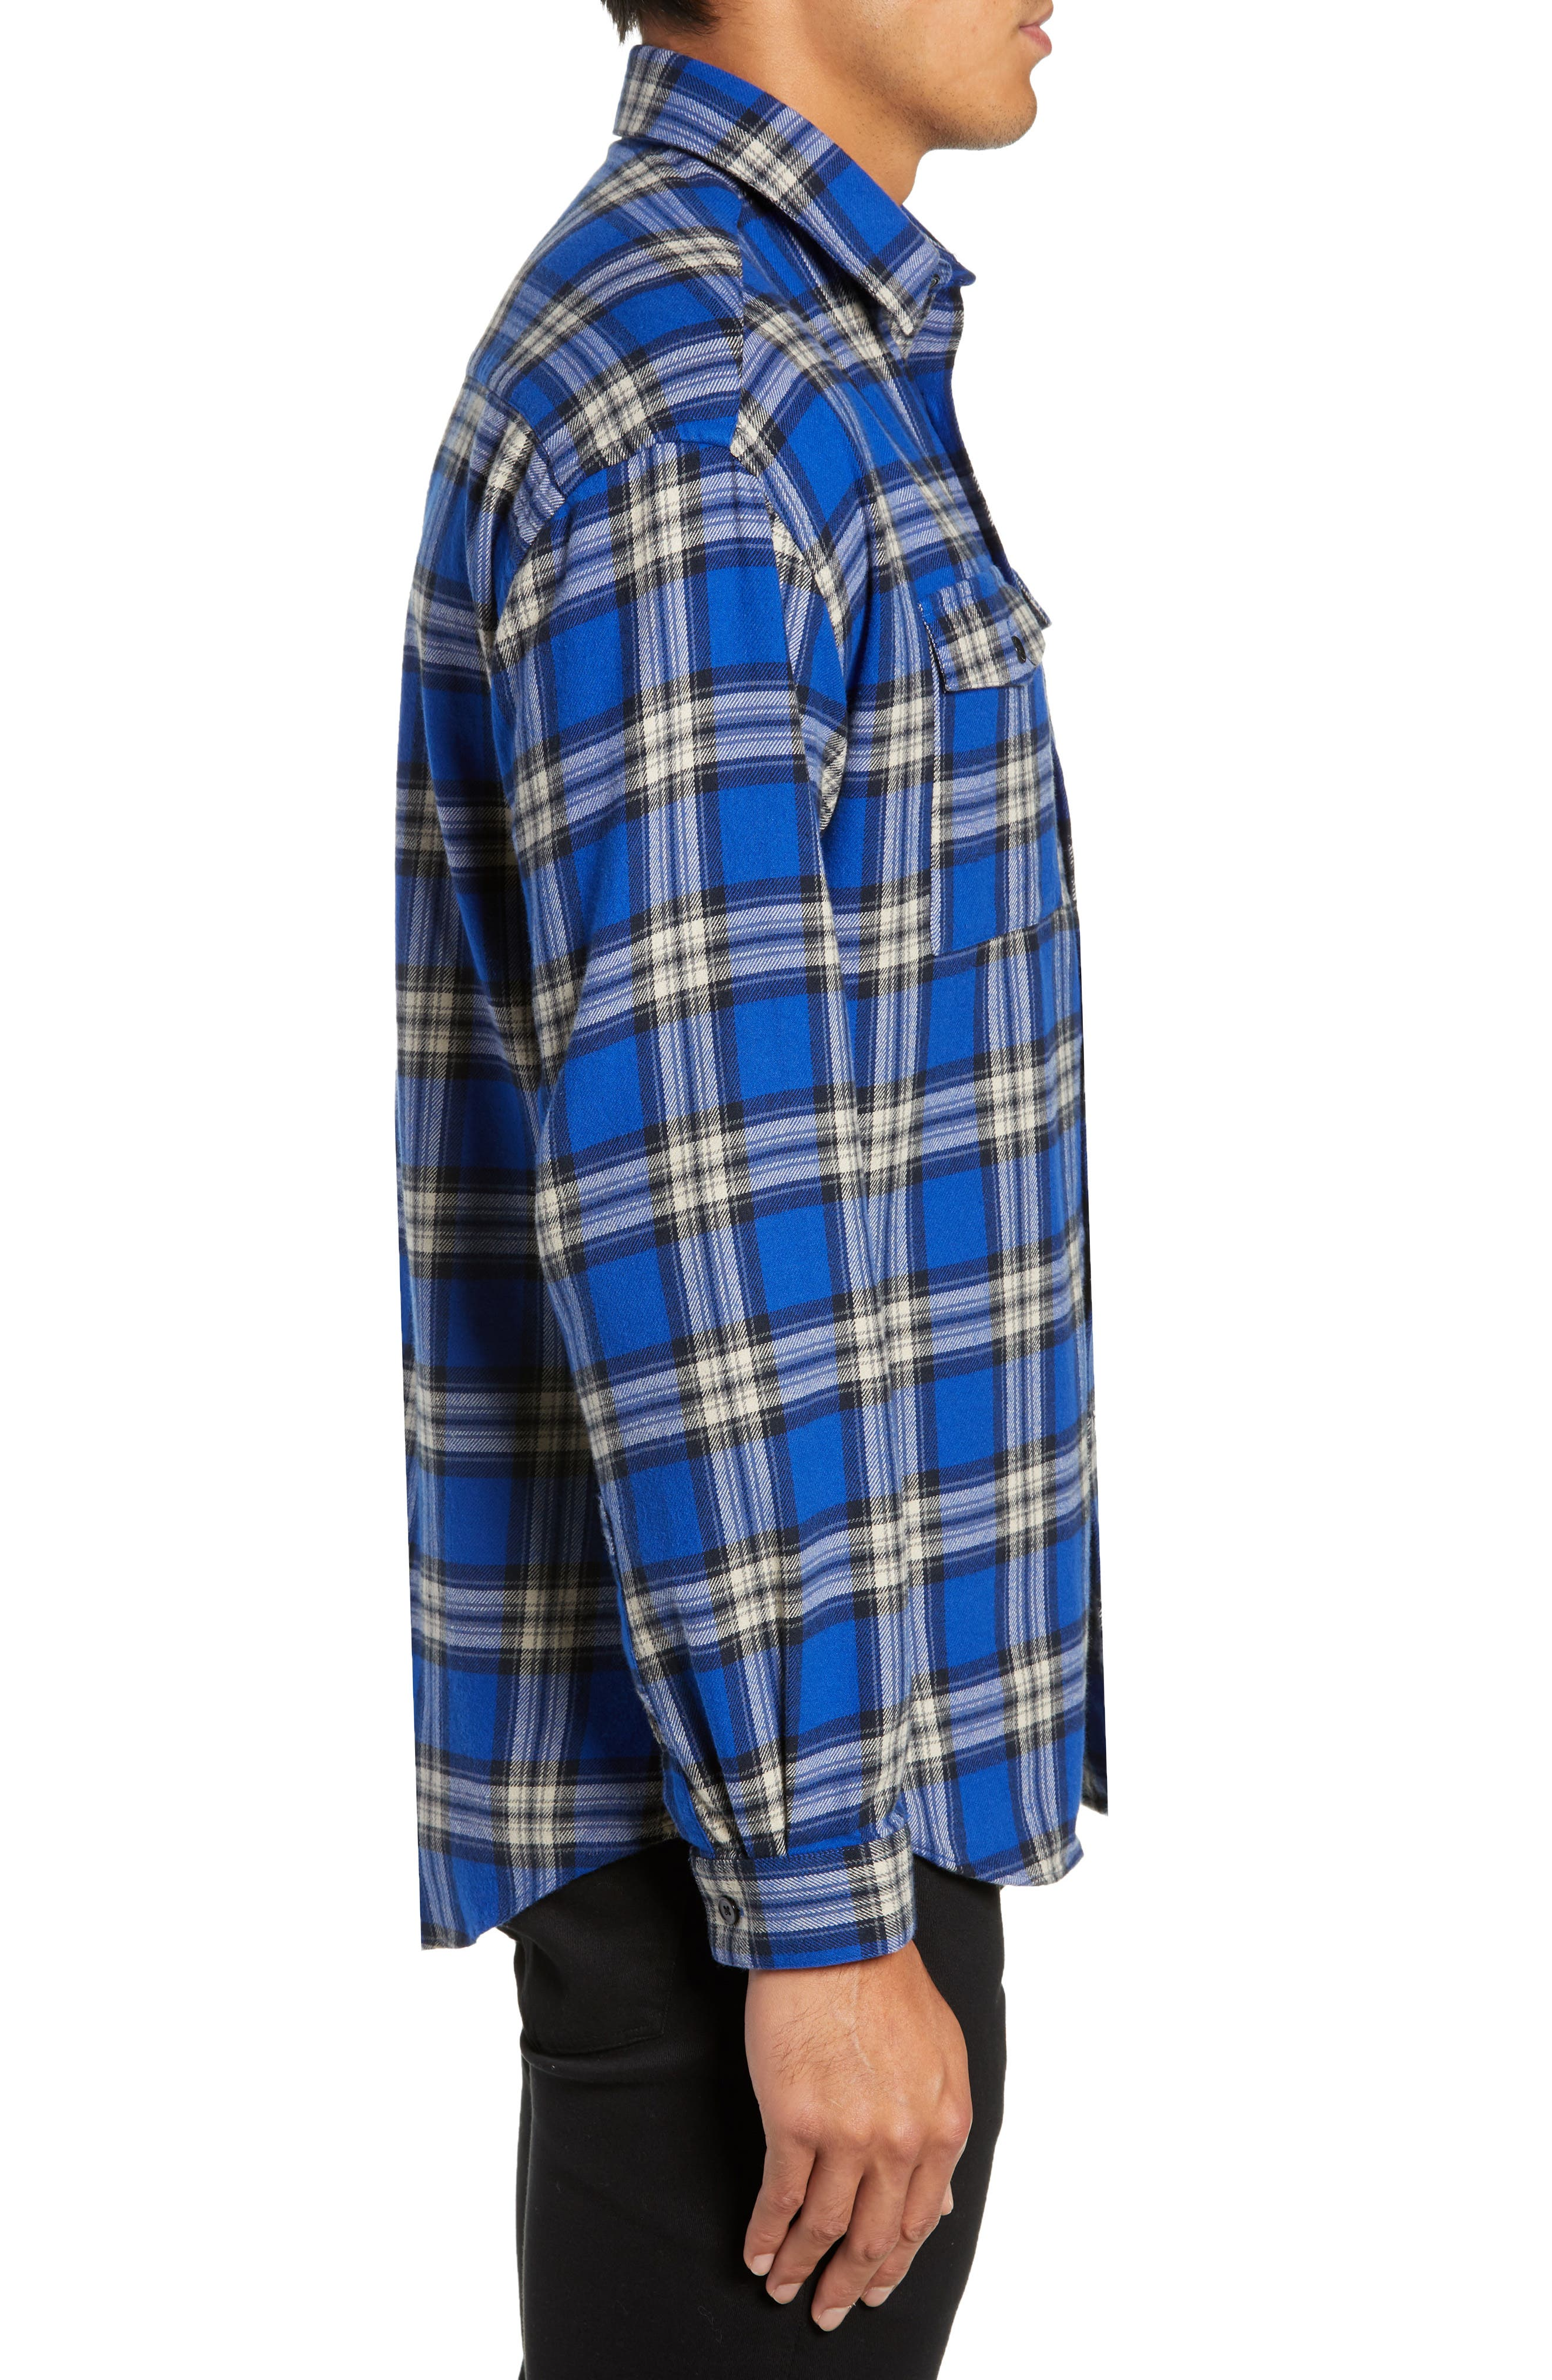 THE KOOPLES,                             Check Flannel Shirt,                             Alternate thumbnail 4, color,                             400